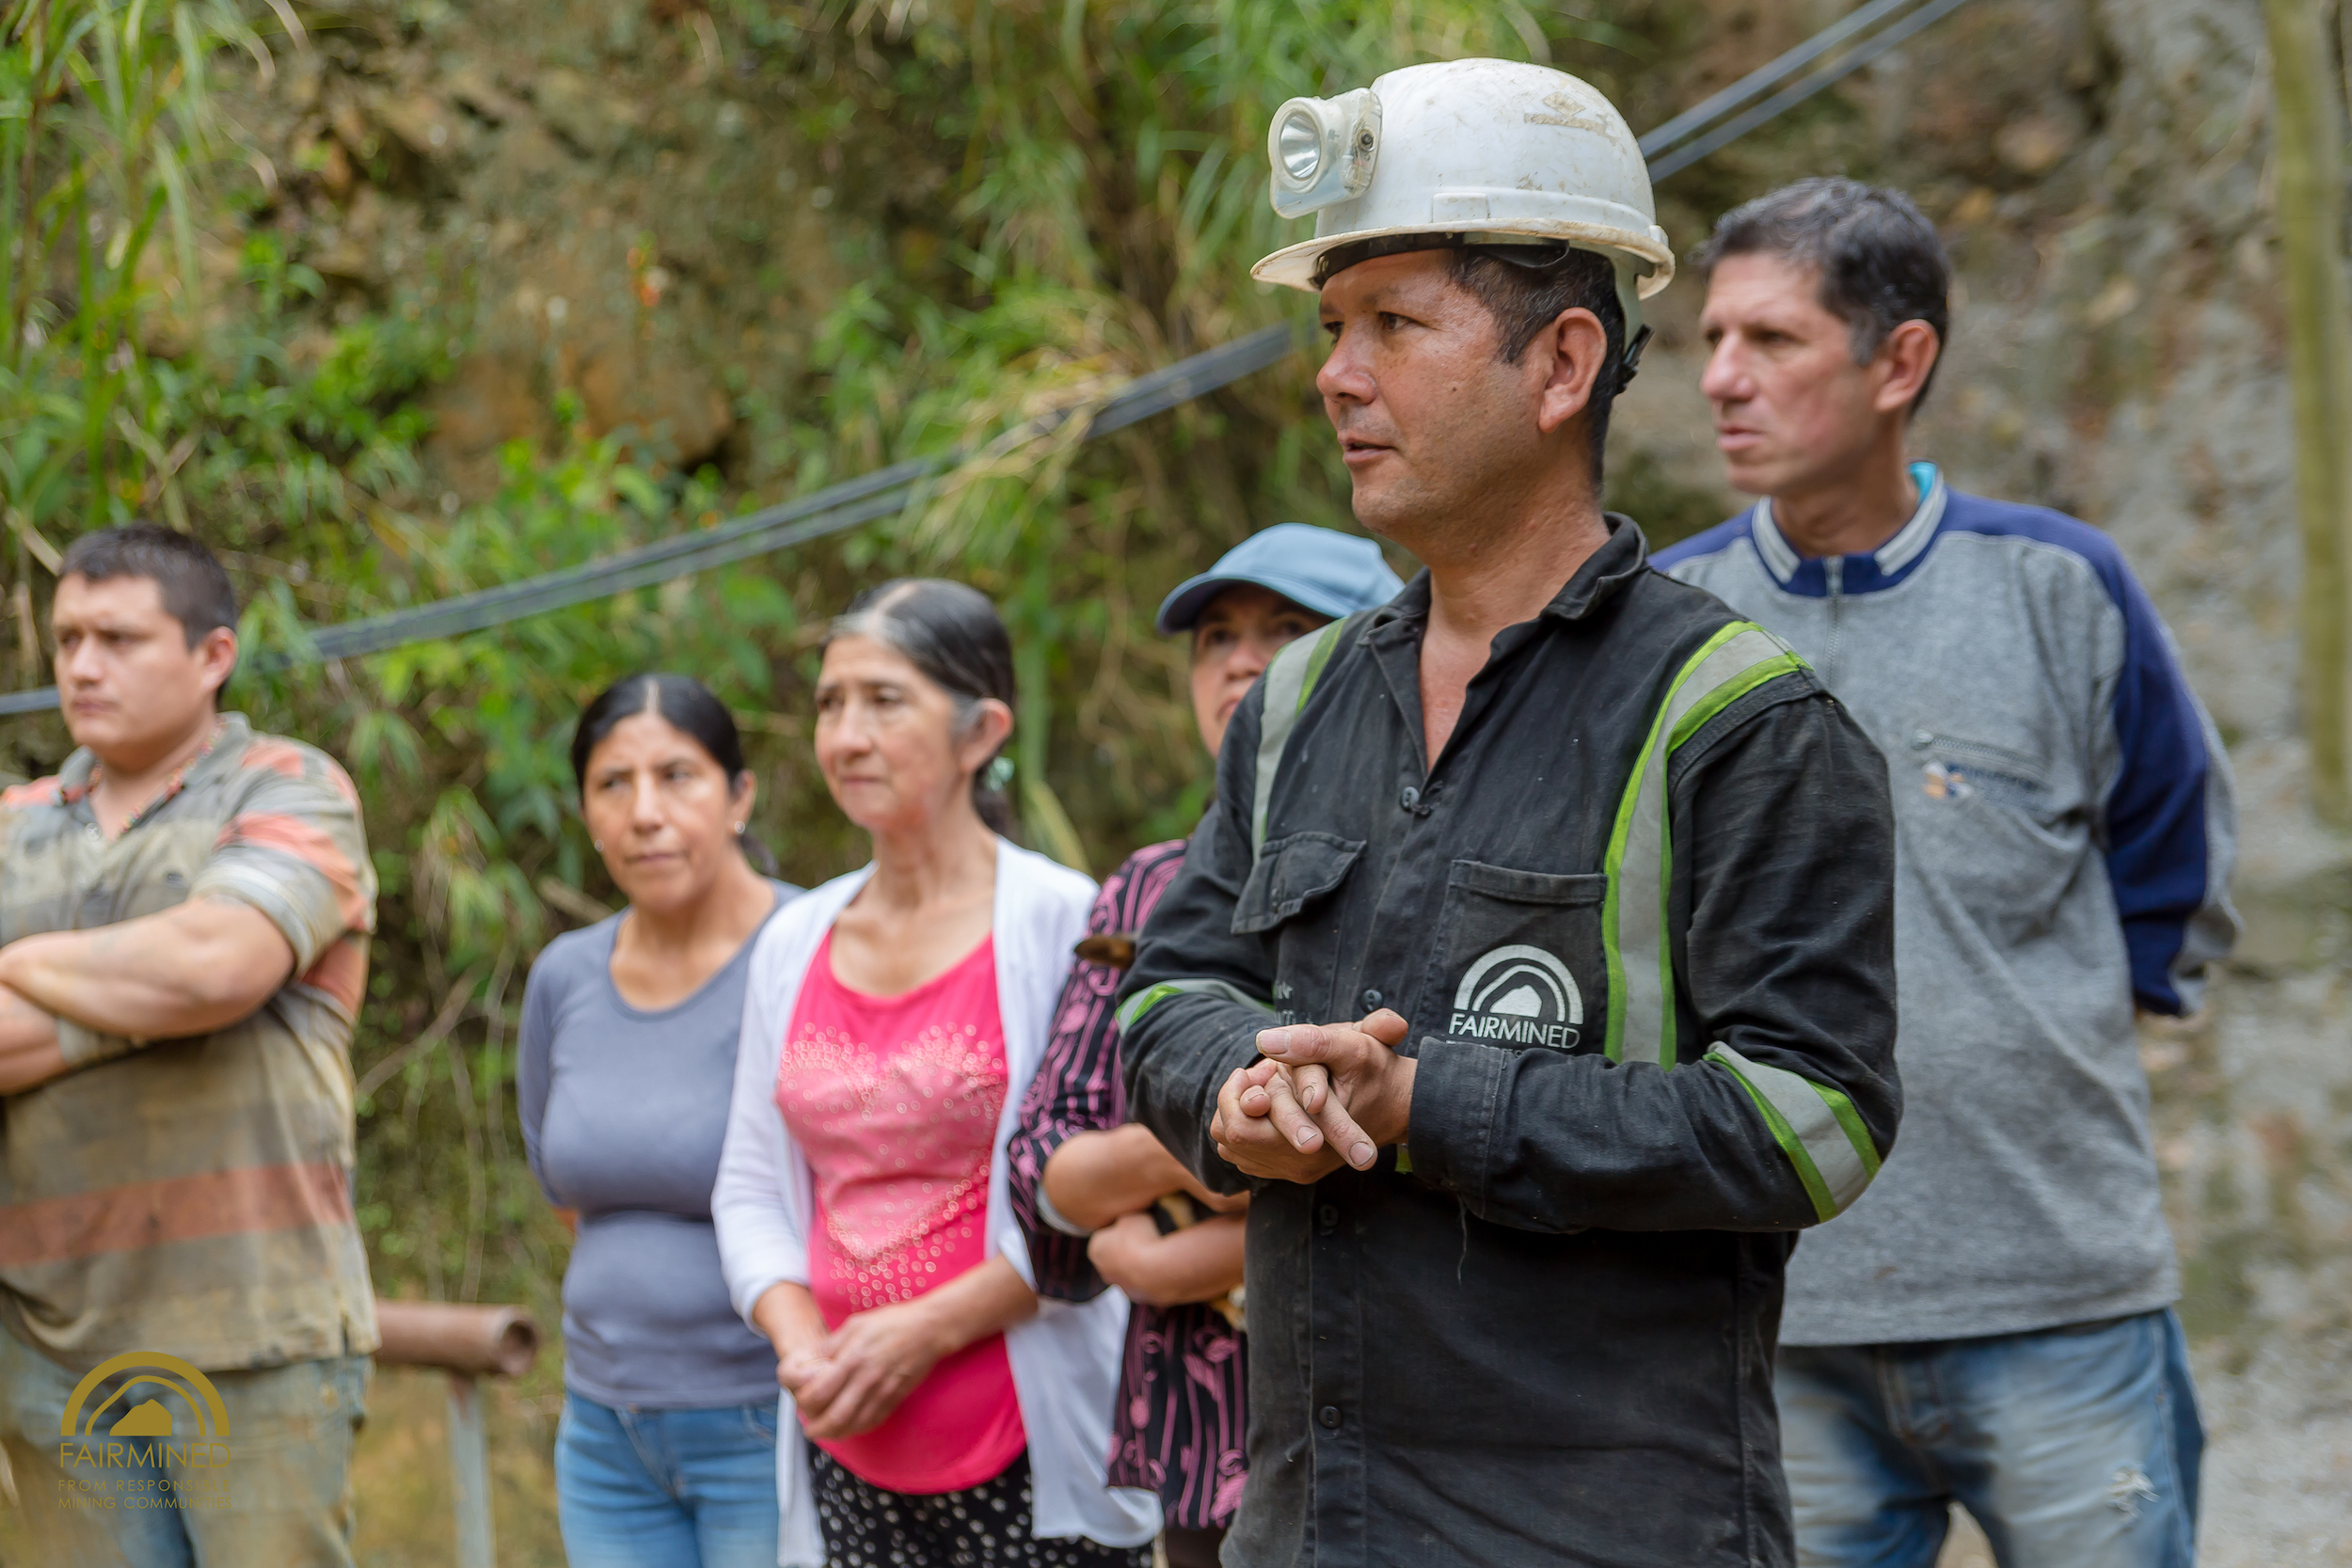 Rolberto and his extended Family are seen here responding to questions asked by visitors. IMAGE: Fairmined